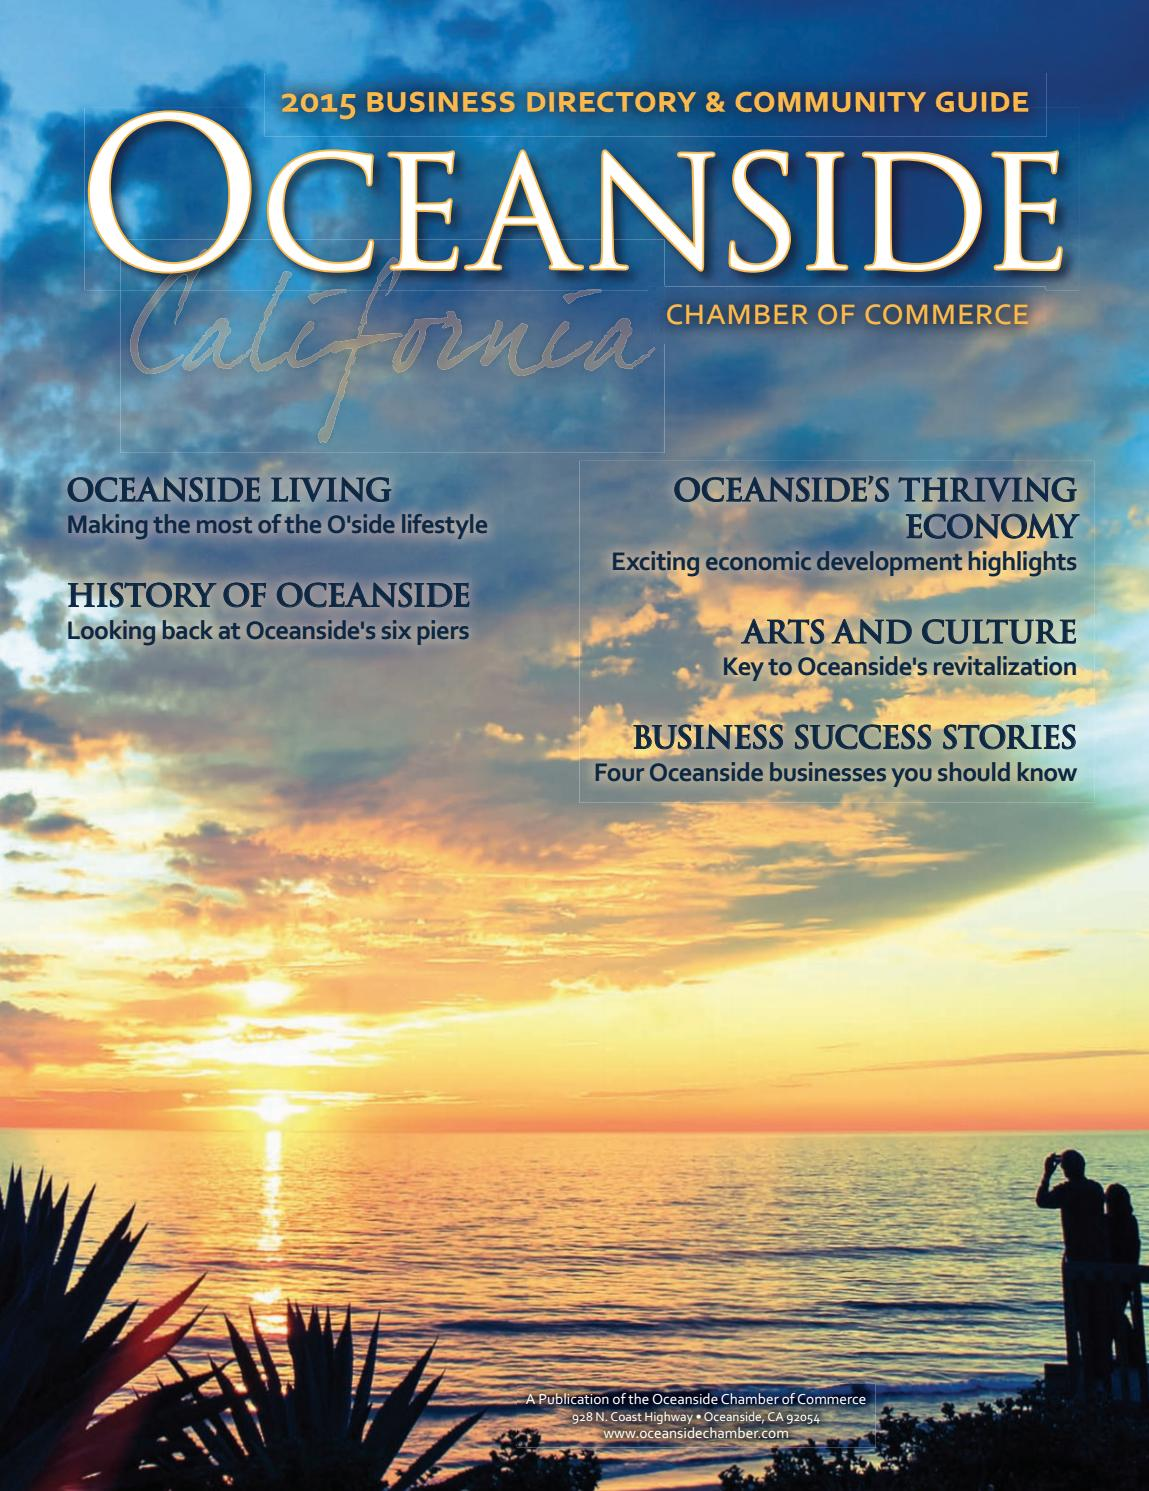 OCEANSIDE COMMUNITY GUIDE & BUSINESS DIRECTORY, Best of OCEANSIDE, ANNUAL  EDITION, 2015 by Oceanside Chamber of Commerce - issuu